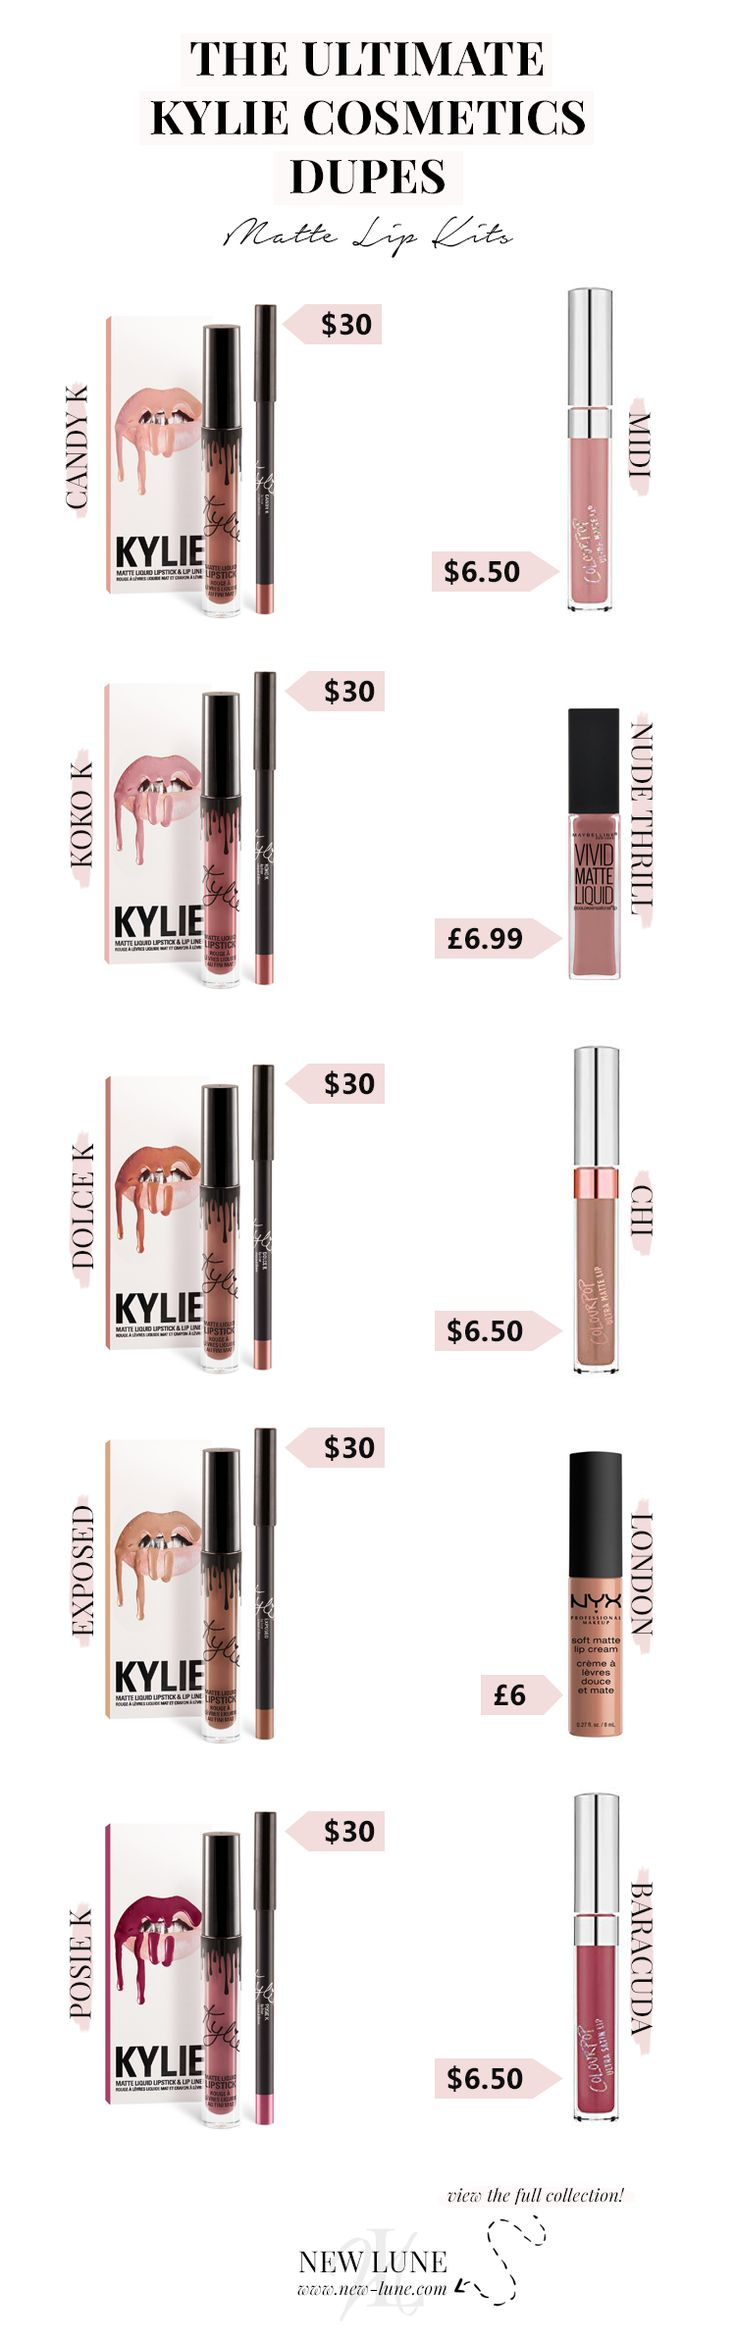 The Ultimate Kylie Cosmetics Dupes: Matte Lip Kits